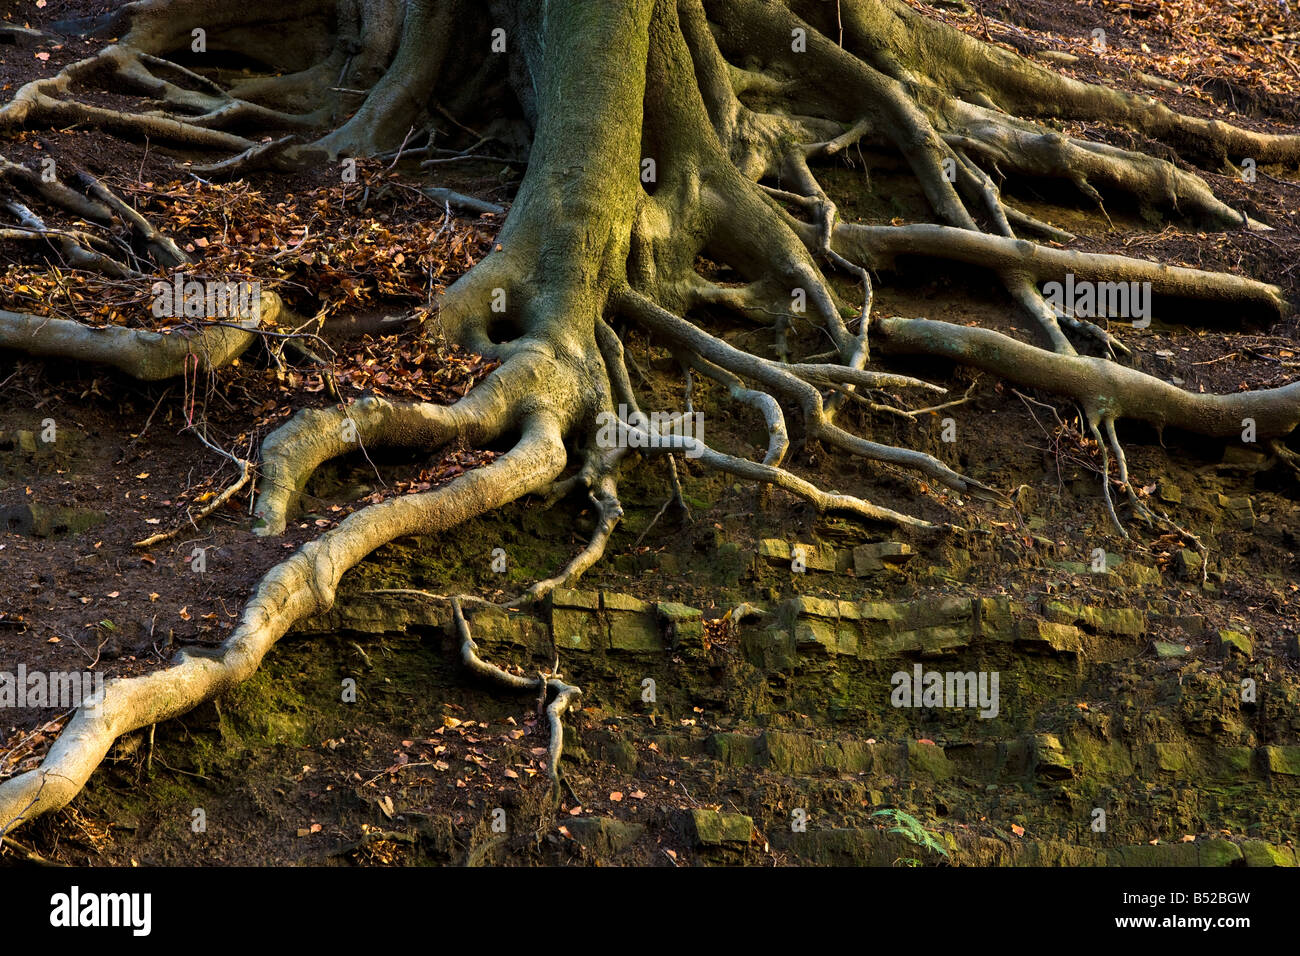 roots of Beech tree. UK - Stock Image